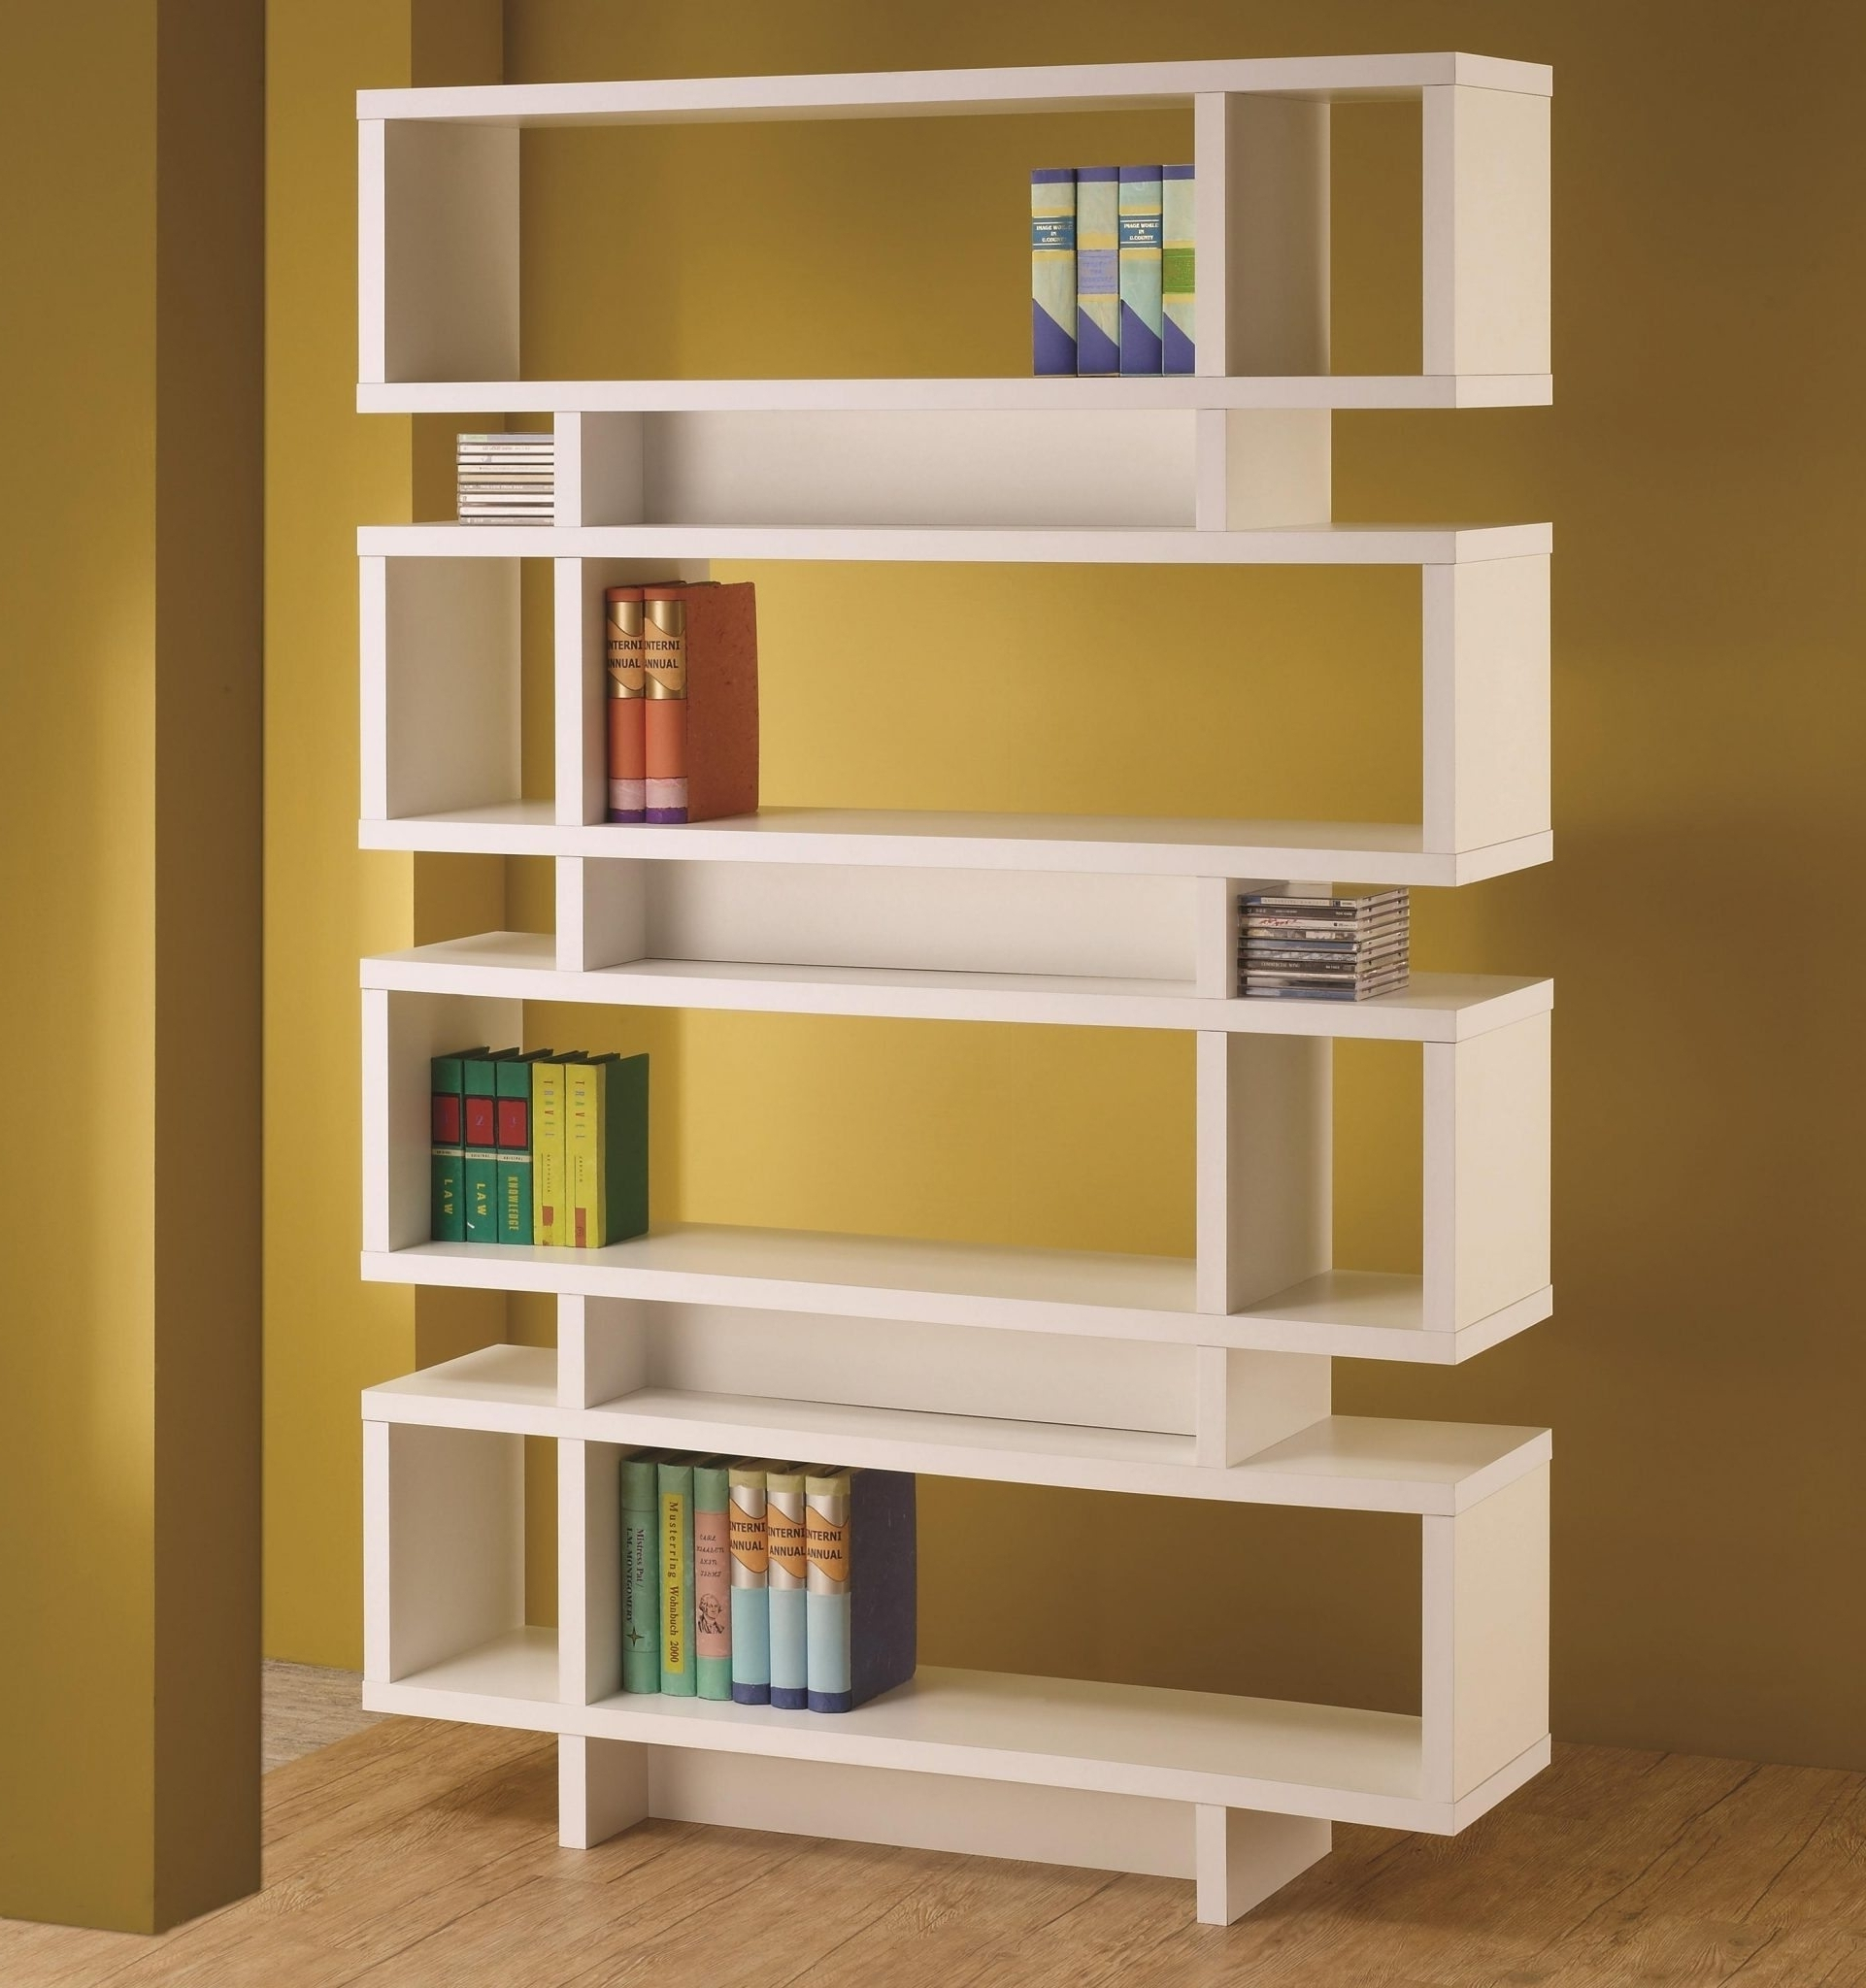 Current Collection Of Solutions Bed Bath Beyond Bookcase For Your Regarding Bed Bath And Beyond Bookcases (View 9 of 15)